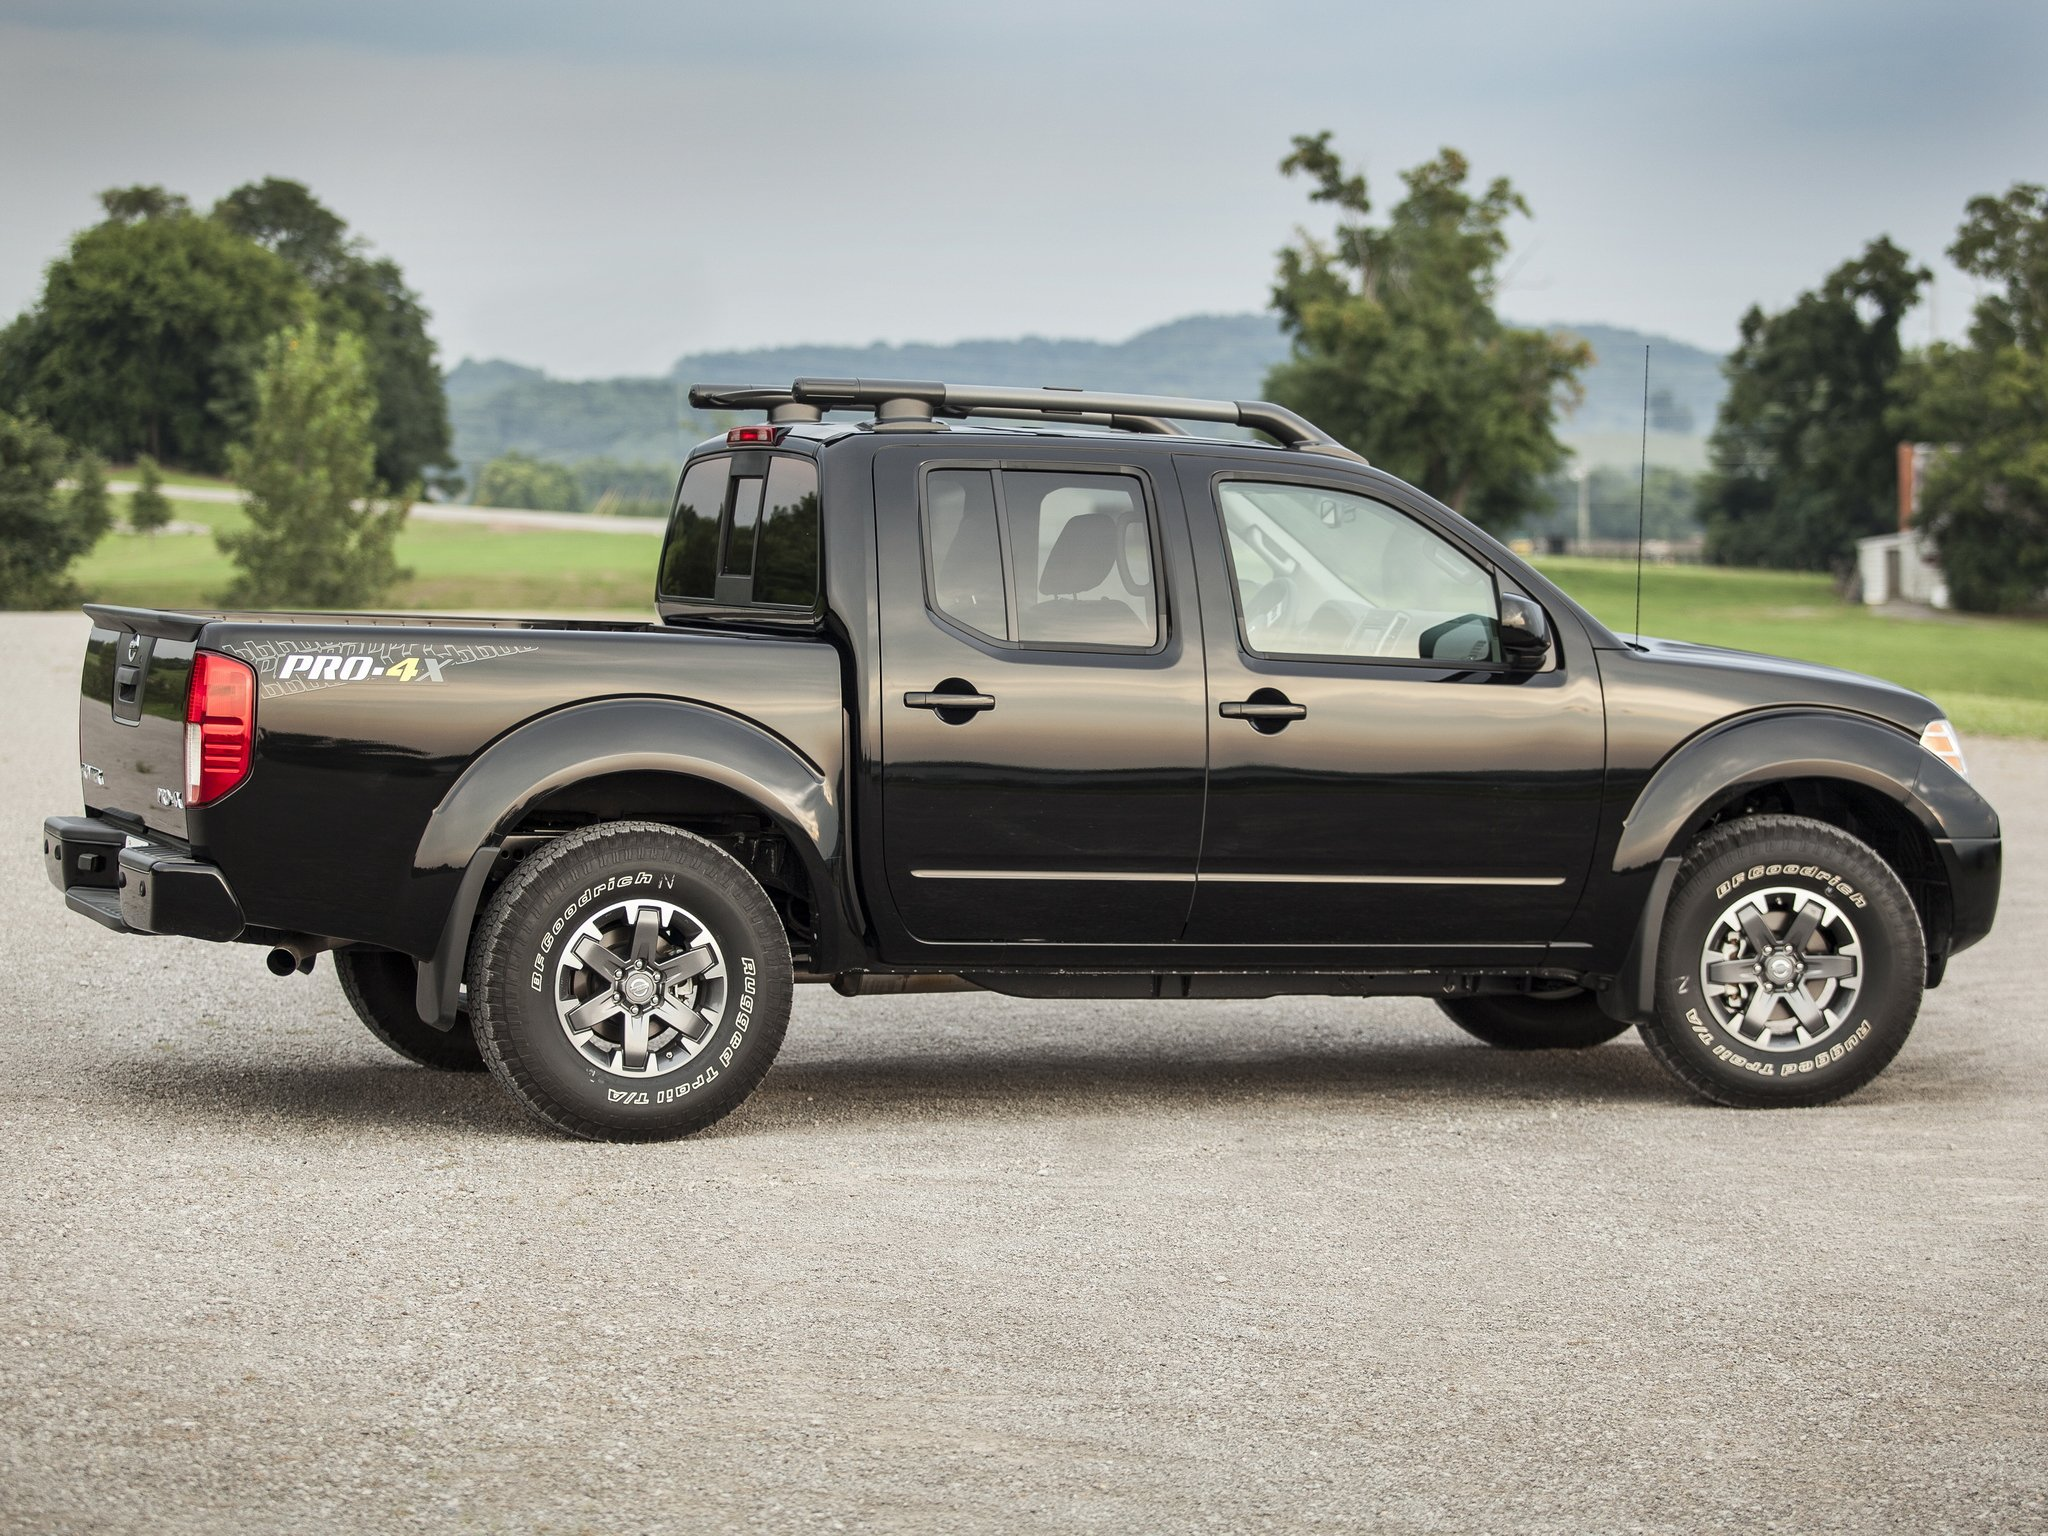 2009 nissan frontier pro 4x crew cab d40 pickup f wallpaper 2048x1536 267971 wallpaperup. Black Bedroom Furniture Sets. Home Design Ideas